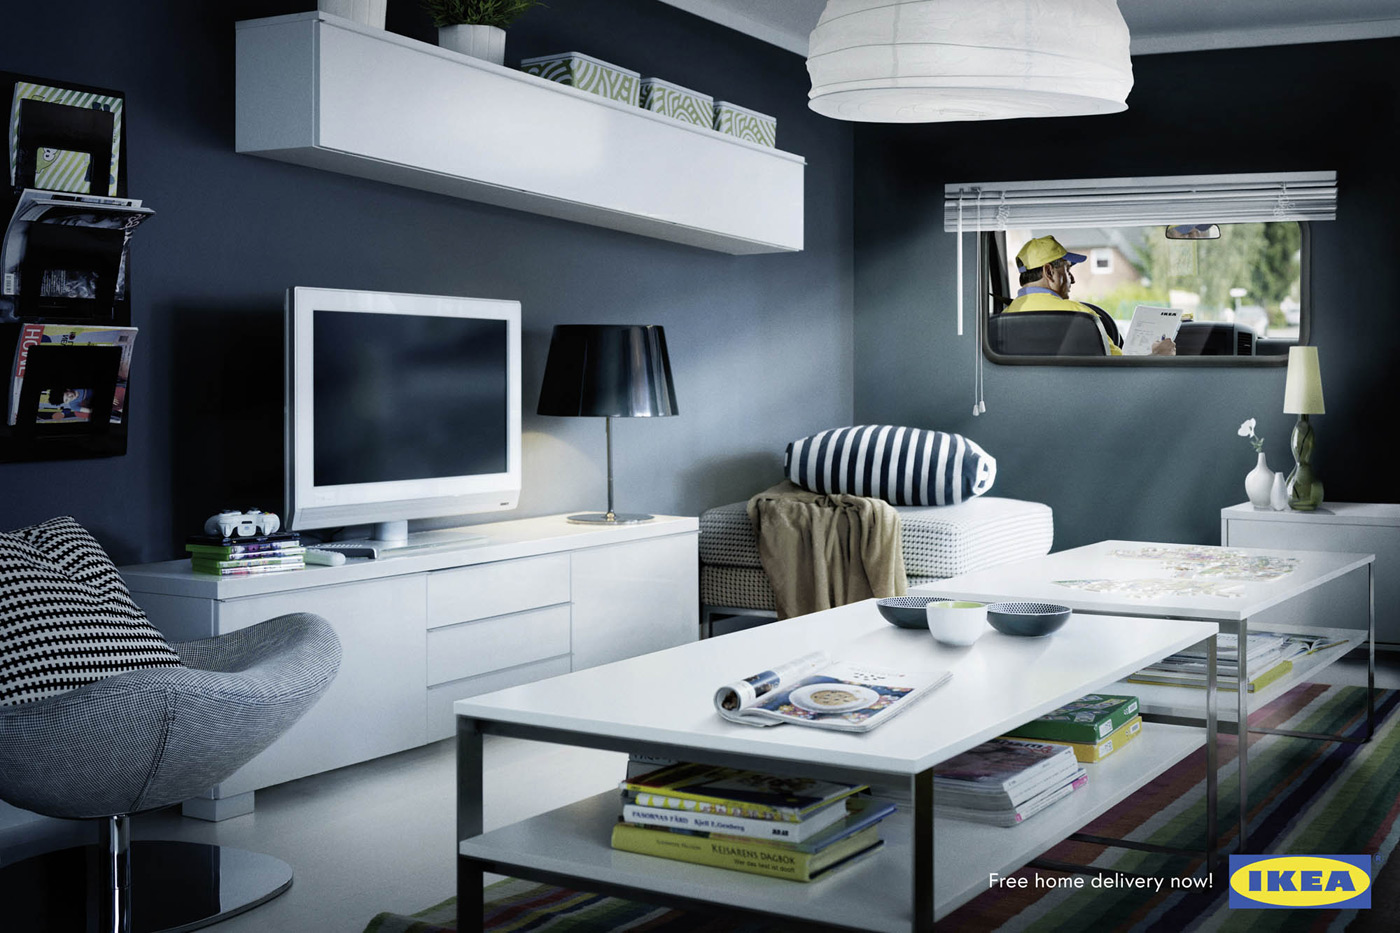 Ikea room delivery the inspiration room - Model home designer inspiration ...